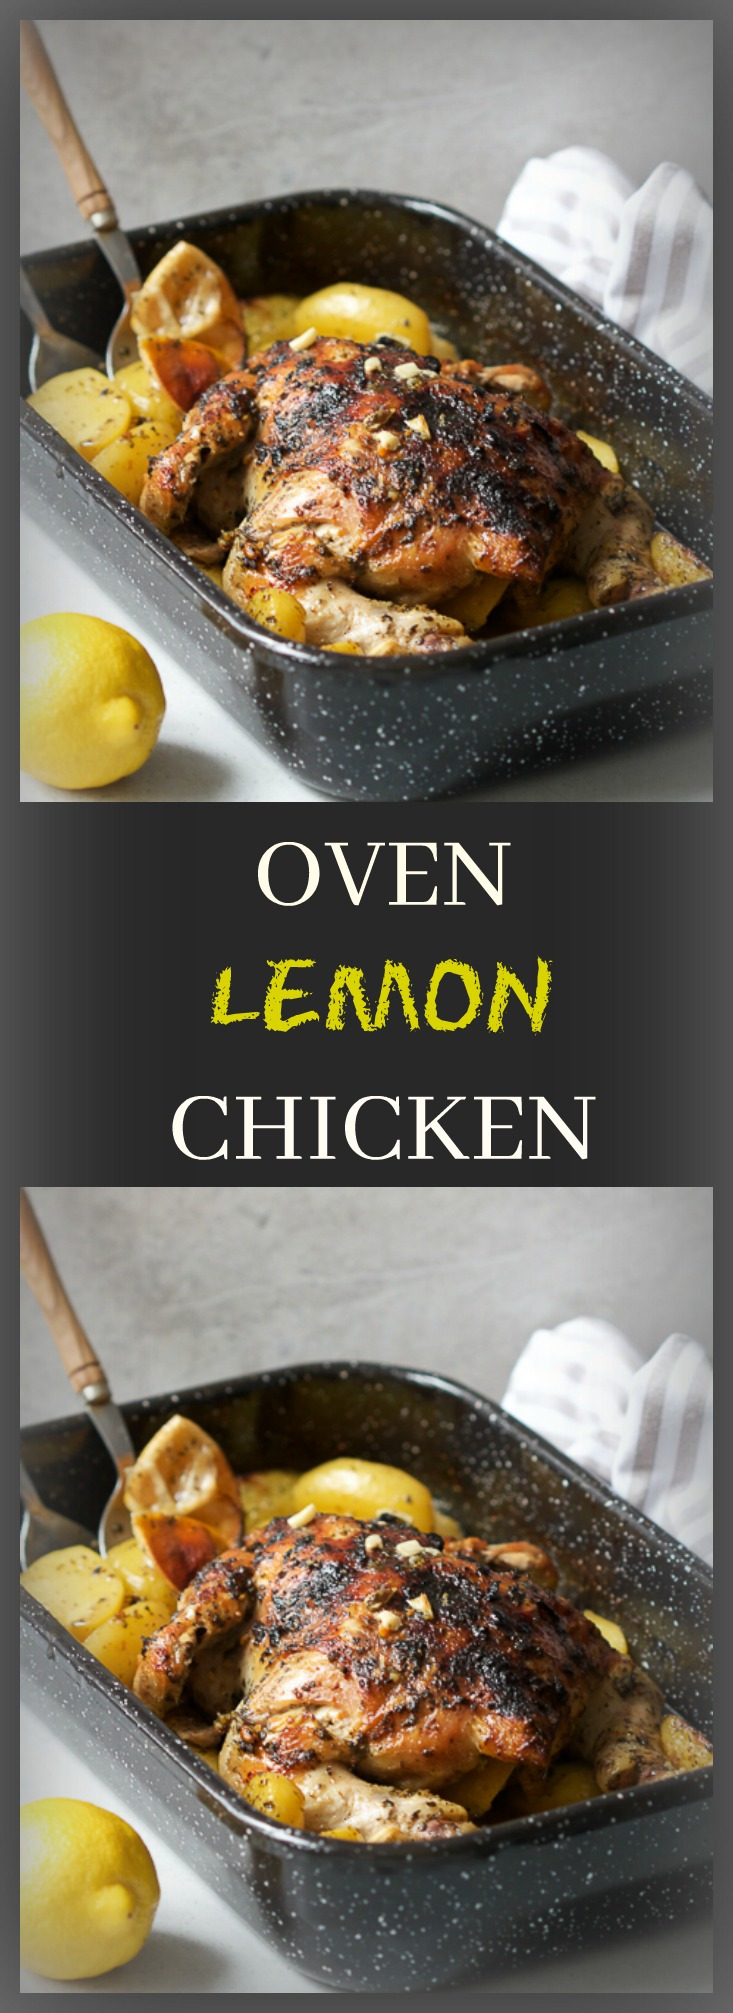 Oven baked lemon chicken (pečena piletina sa limunom i krompirom): the best way to impress your dinner guests. Incredibly easy to make but I won't tell if you don't!